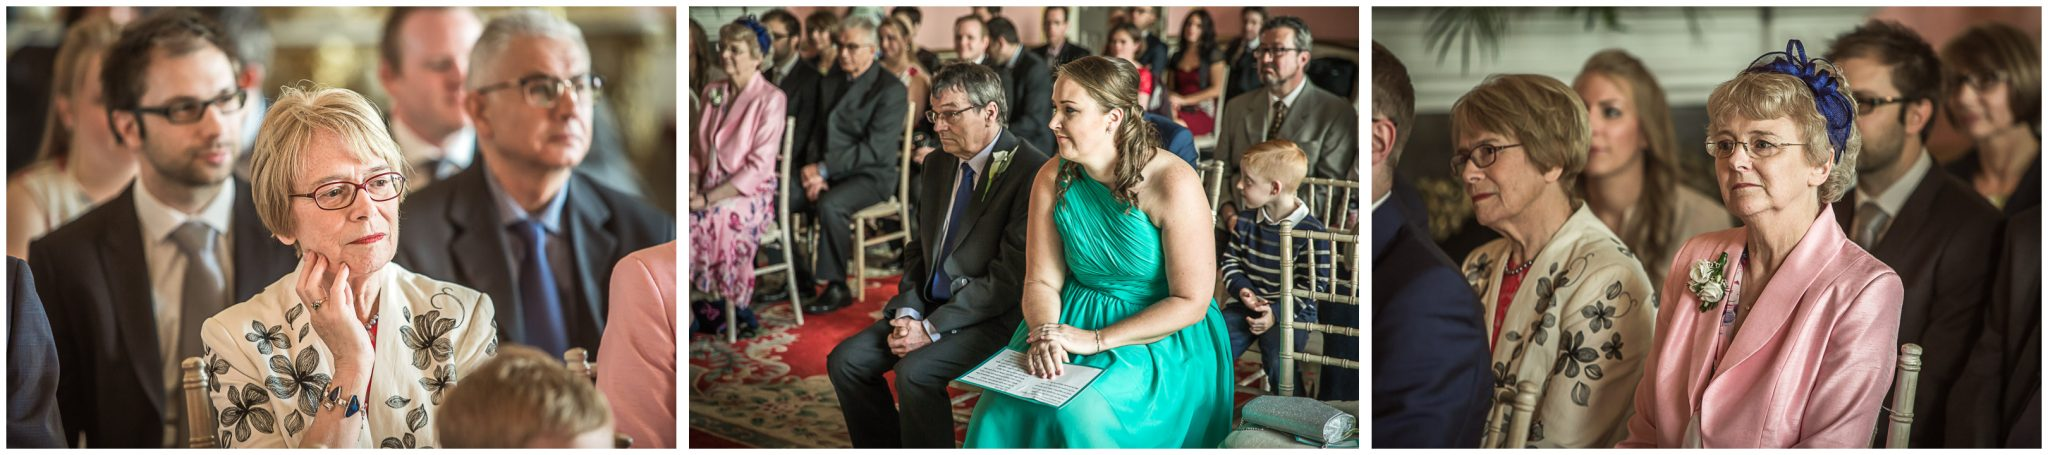 Avington Park wedding photography guests watching ceremony